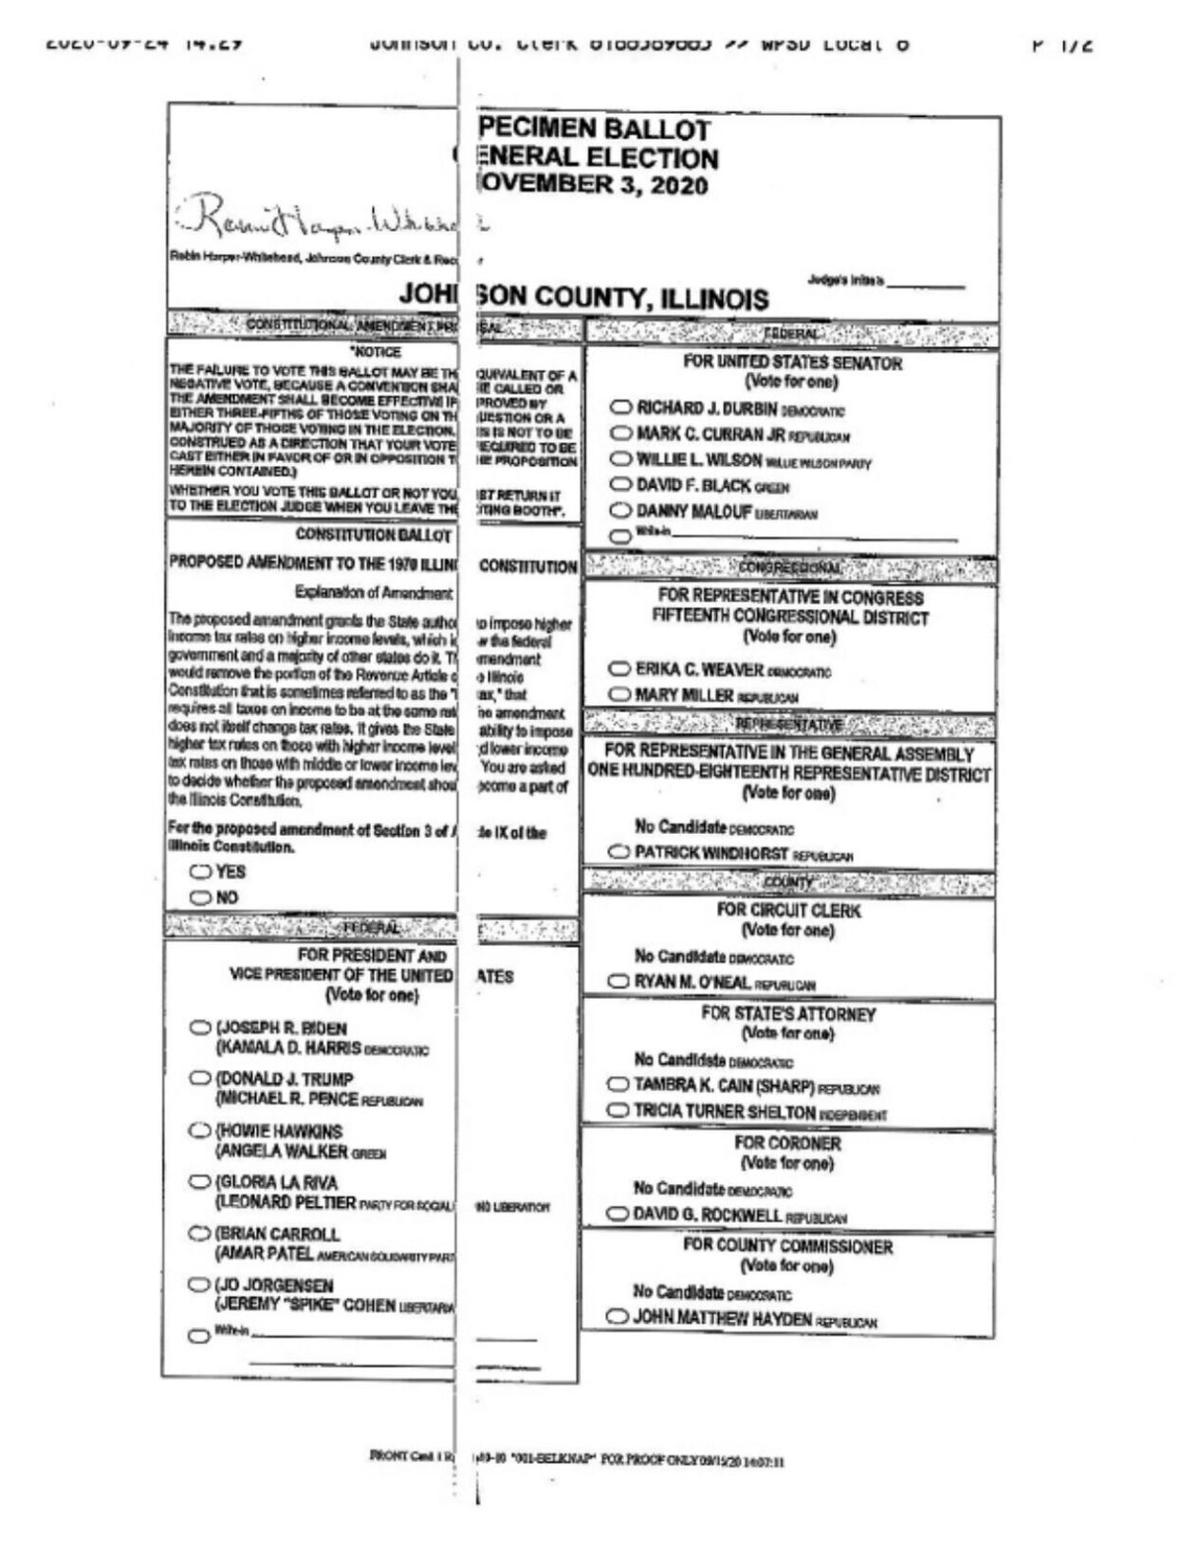 JOHNSON COUNTY BALLOT.pdf